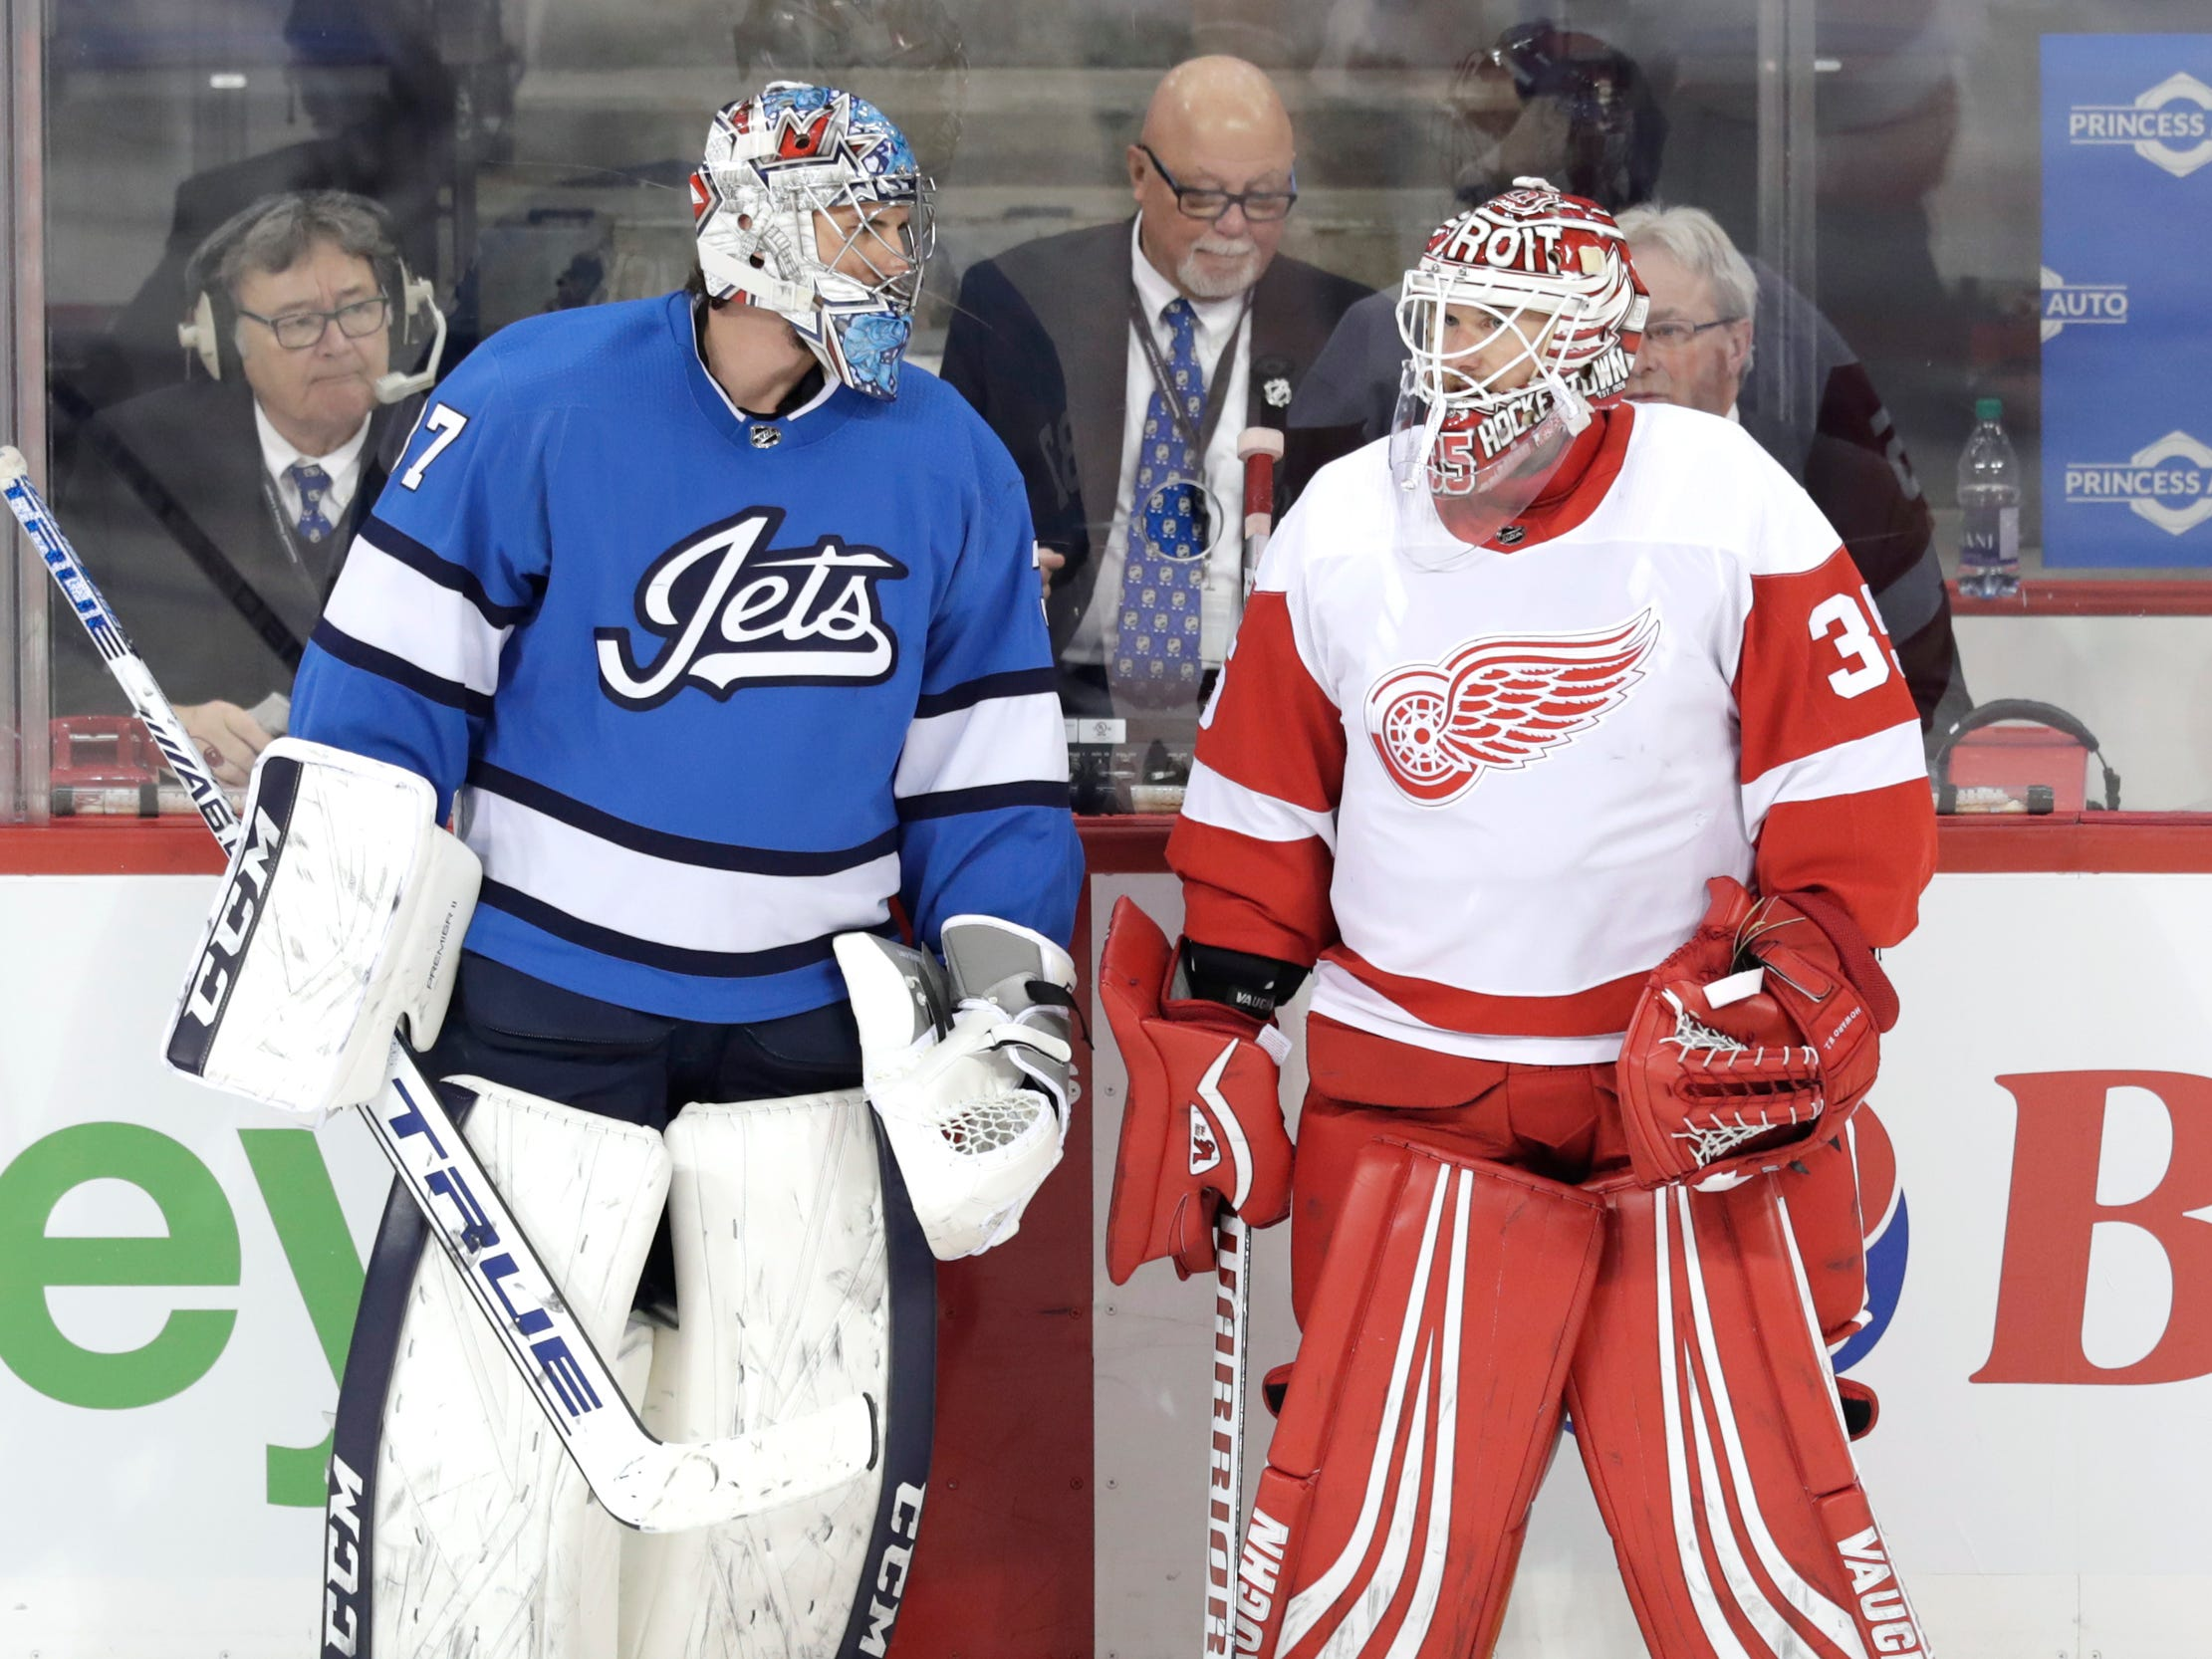 Winnipeg Jets goaltender Connor Hellebuyck talks with Detroit Red Wings goaltender Jimmy Howard during warmups at Bell MTS Place, Jan. 11, 2019 in Winnipeg, Manitoba, CAN.